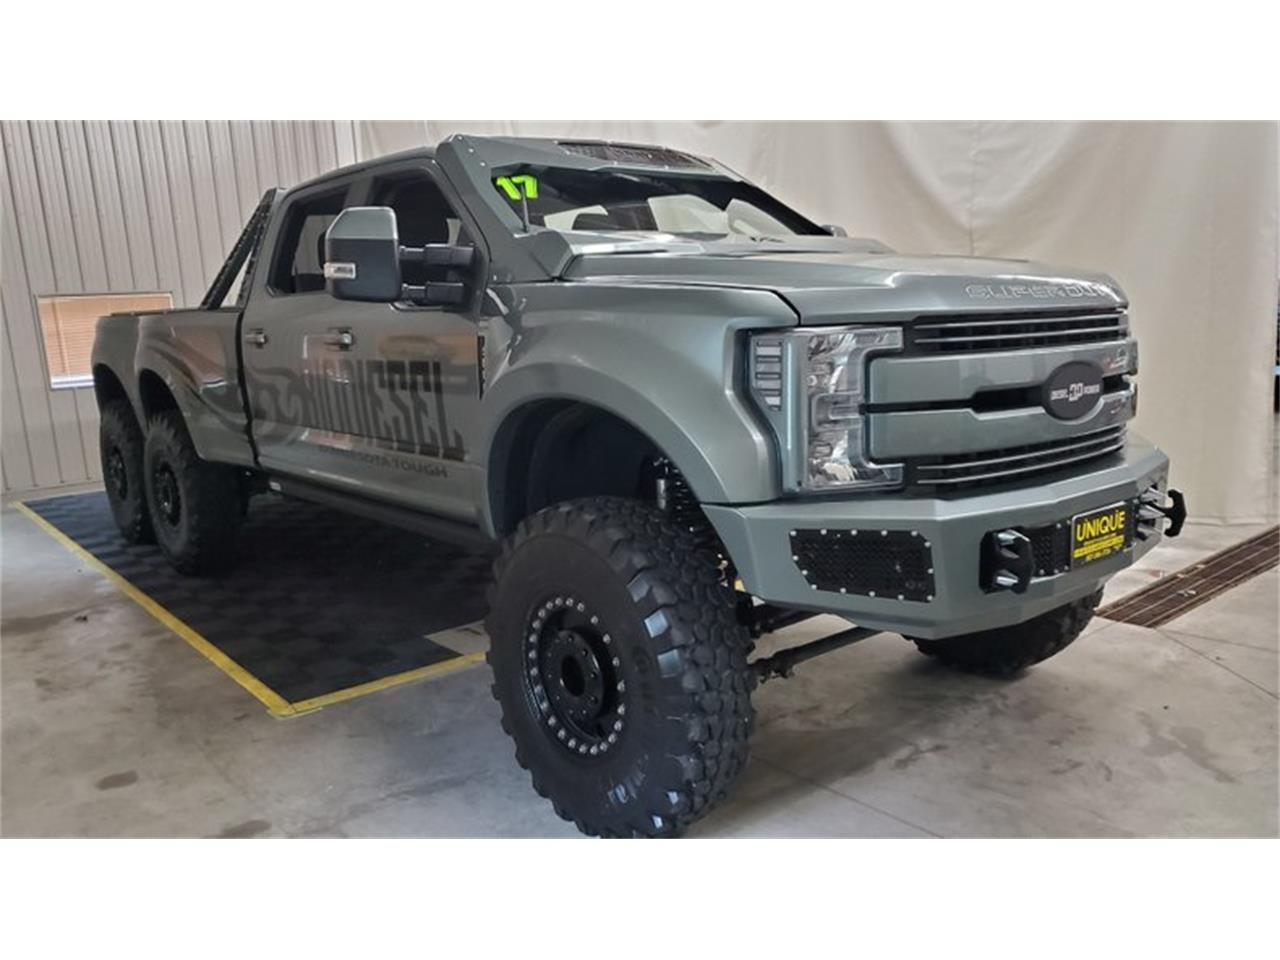 2017 Ford F550 (CC-1268531) for sale in Mankato, Minnesota